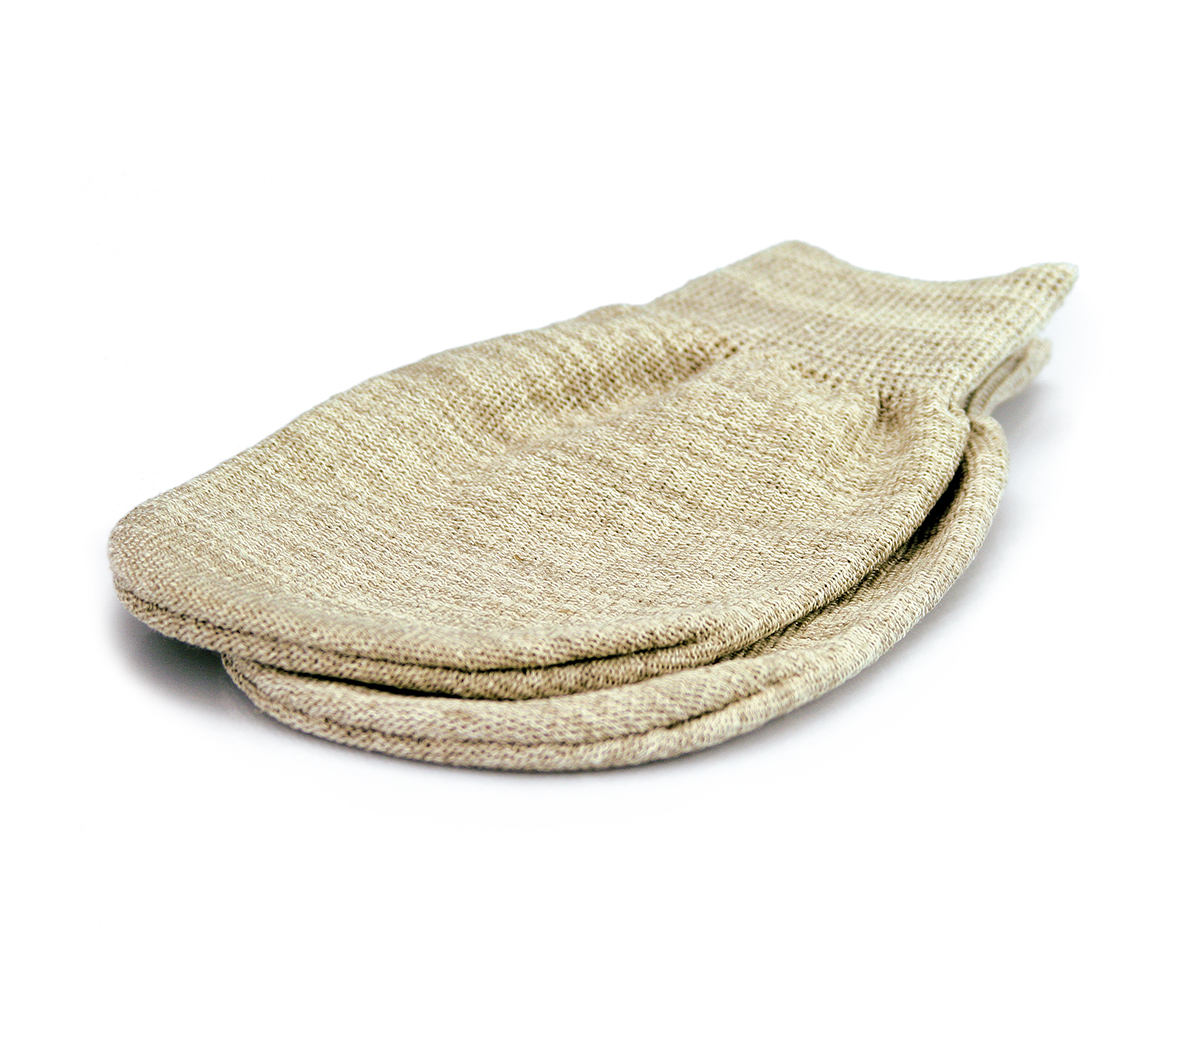 Gloves made of linen for hamam